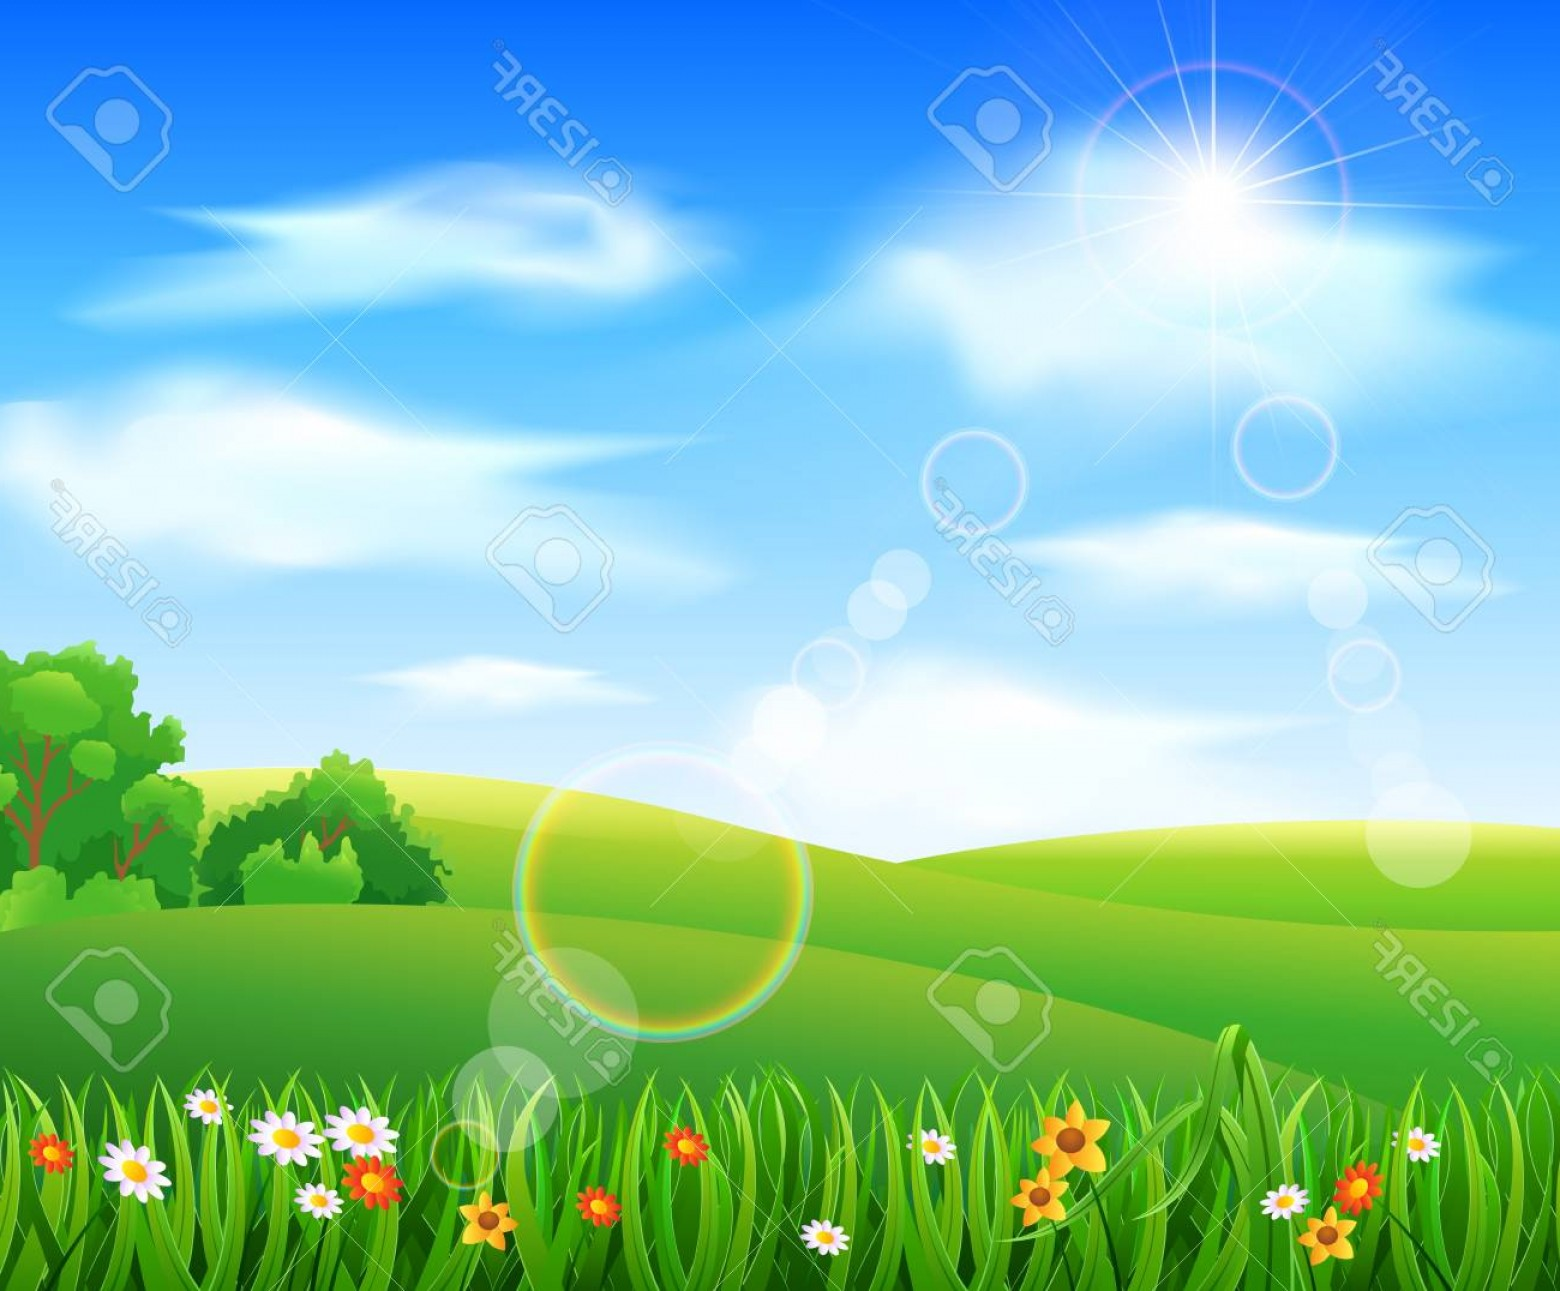 Vector Natural Background Sky: Photostock Vector Nature Background With Green Grass And Flowers And Blue Sky